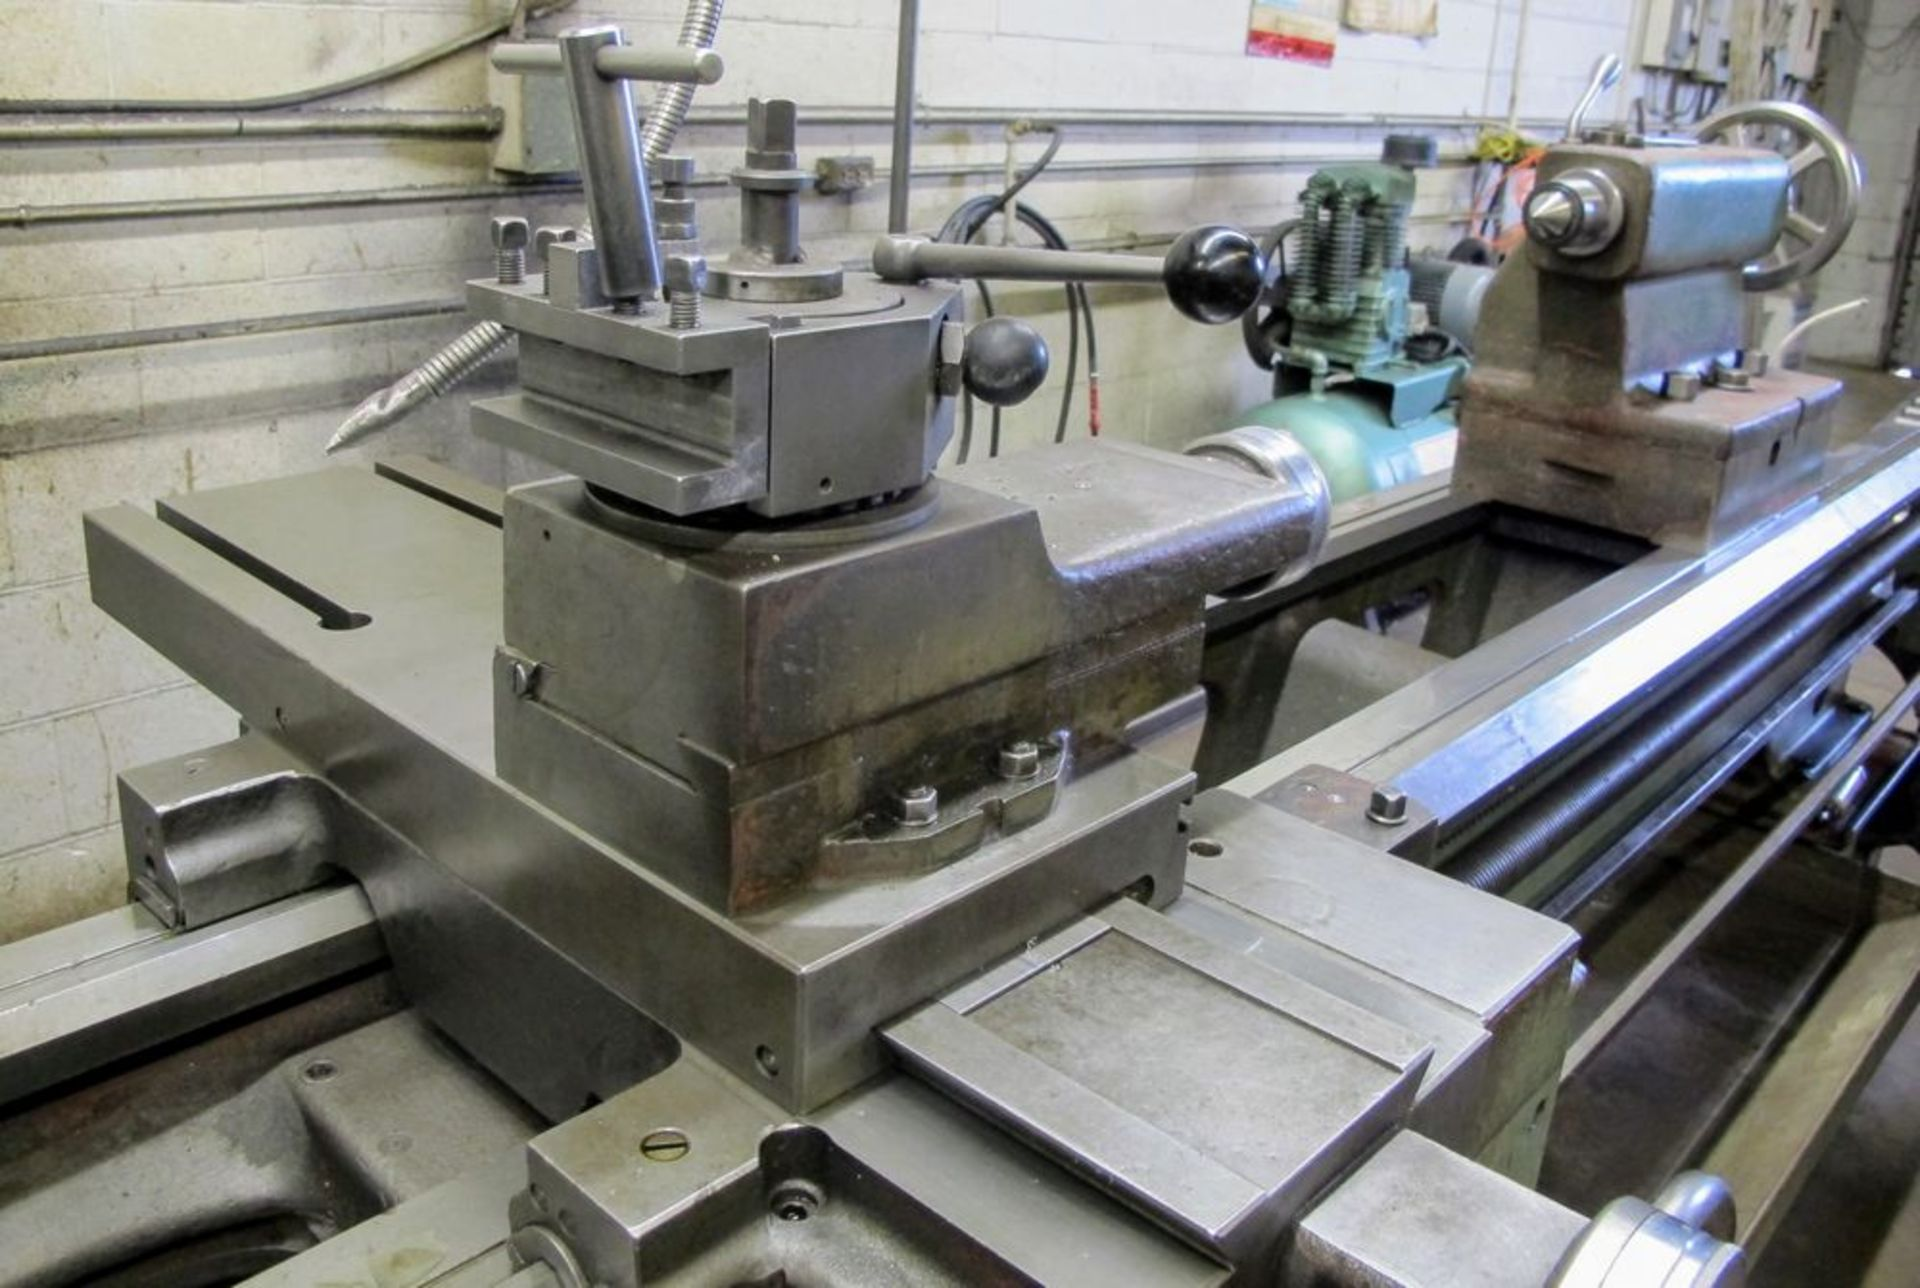 """TOS TRENCIN SN71B LATHE, 28"""" SWING, 7' BED, 3 JAW CHUCK, TAIL STOCK, STEADY REST, QUICK CHANGE - Image 6 of 10"""